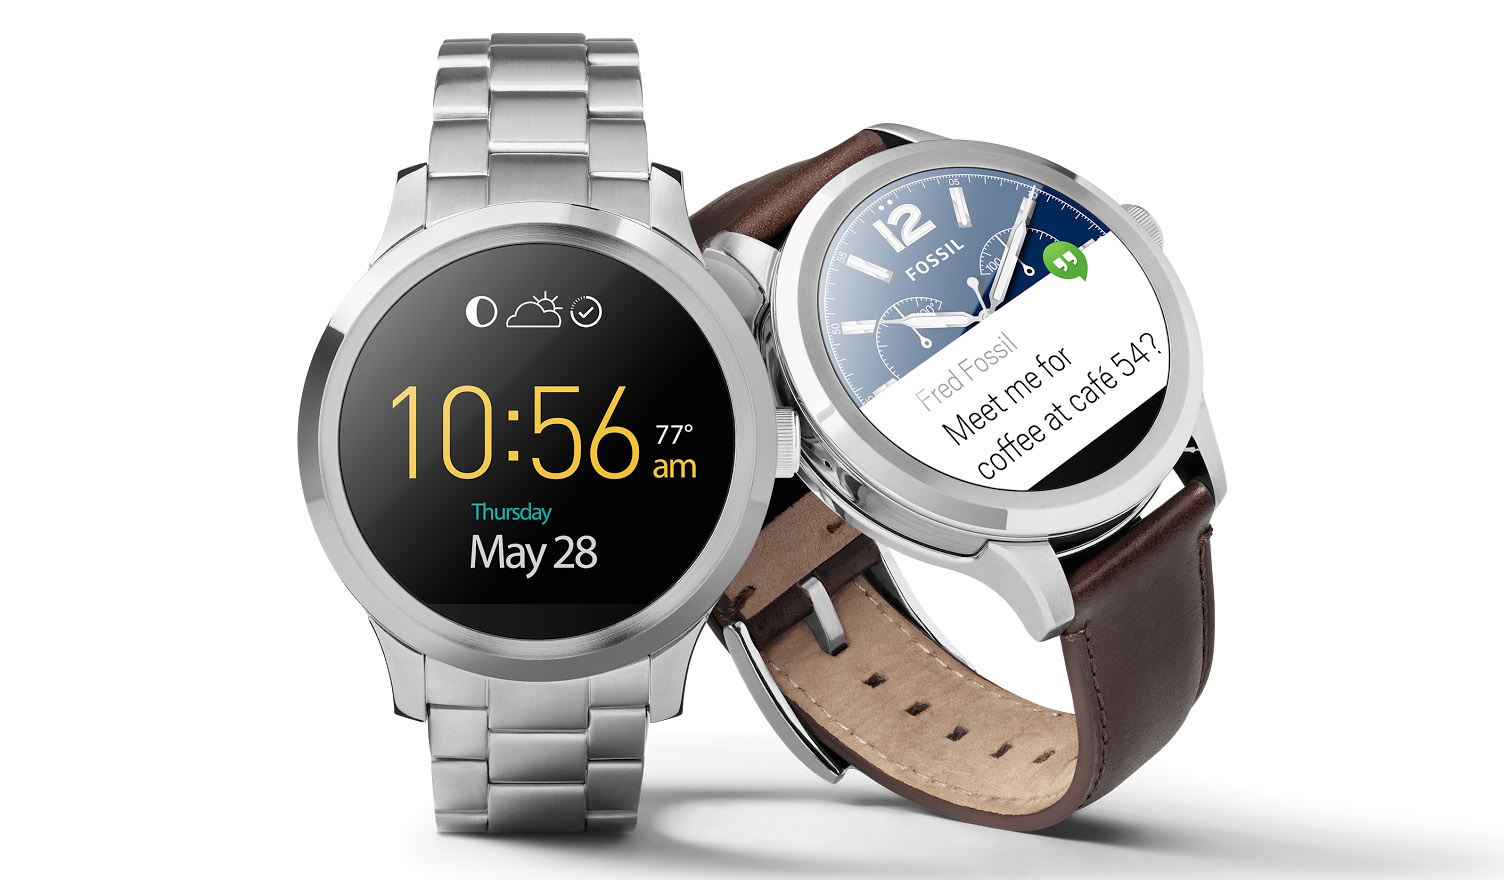 Fossil Android Watch On Sale For $275